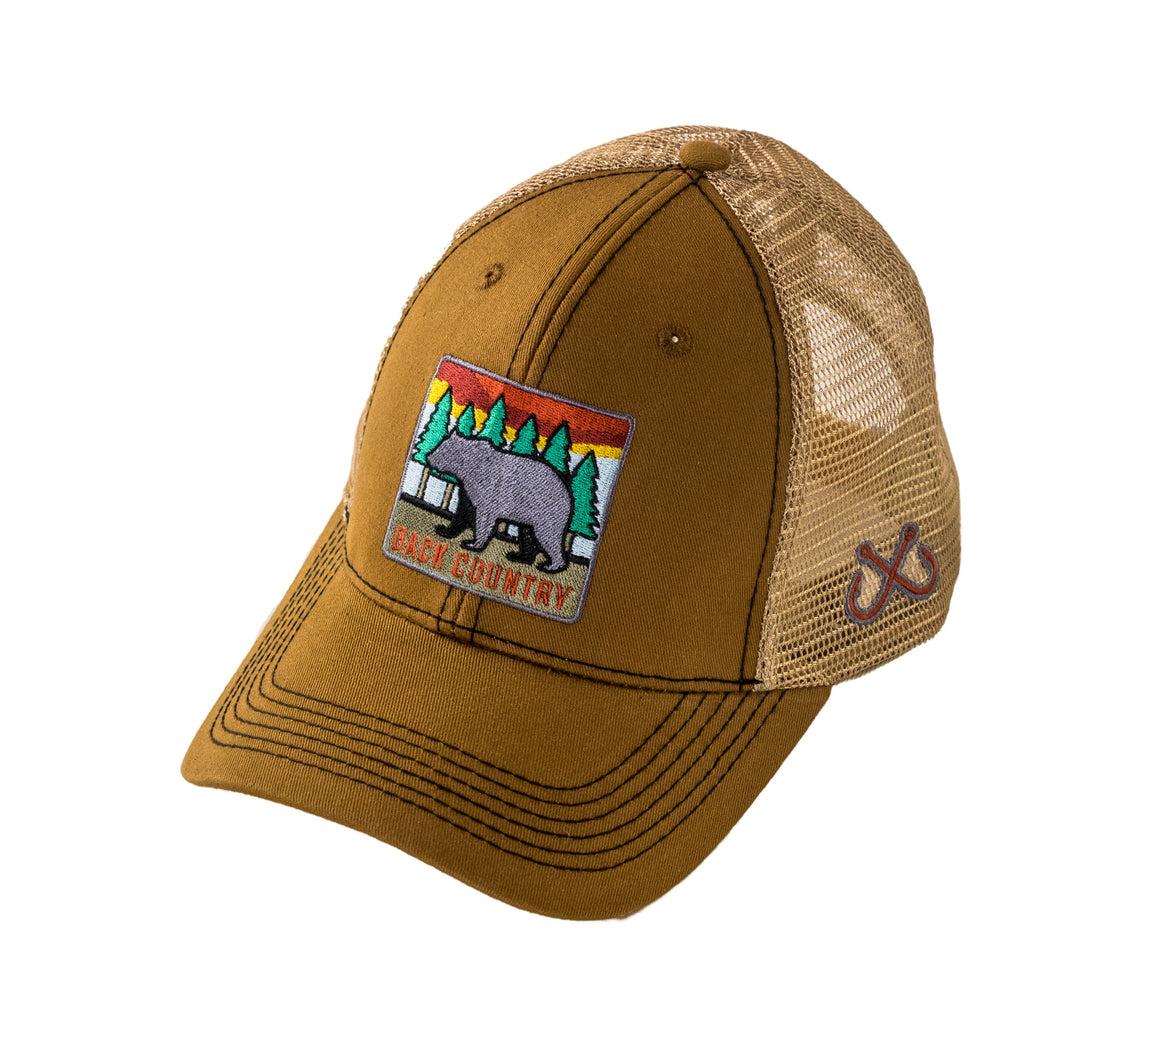 Trucker Hat - Back Country Bear - Camel/Tan